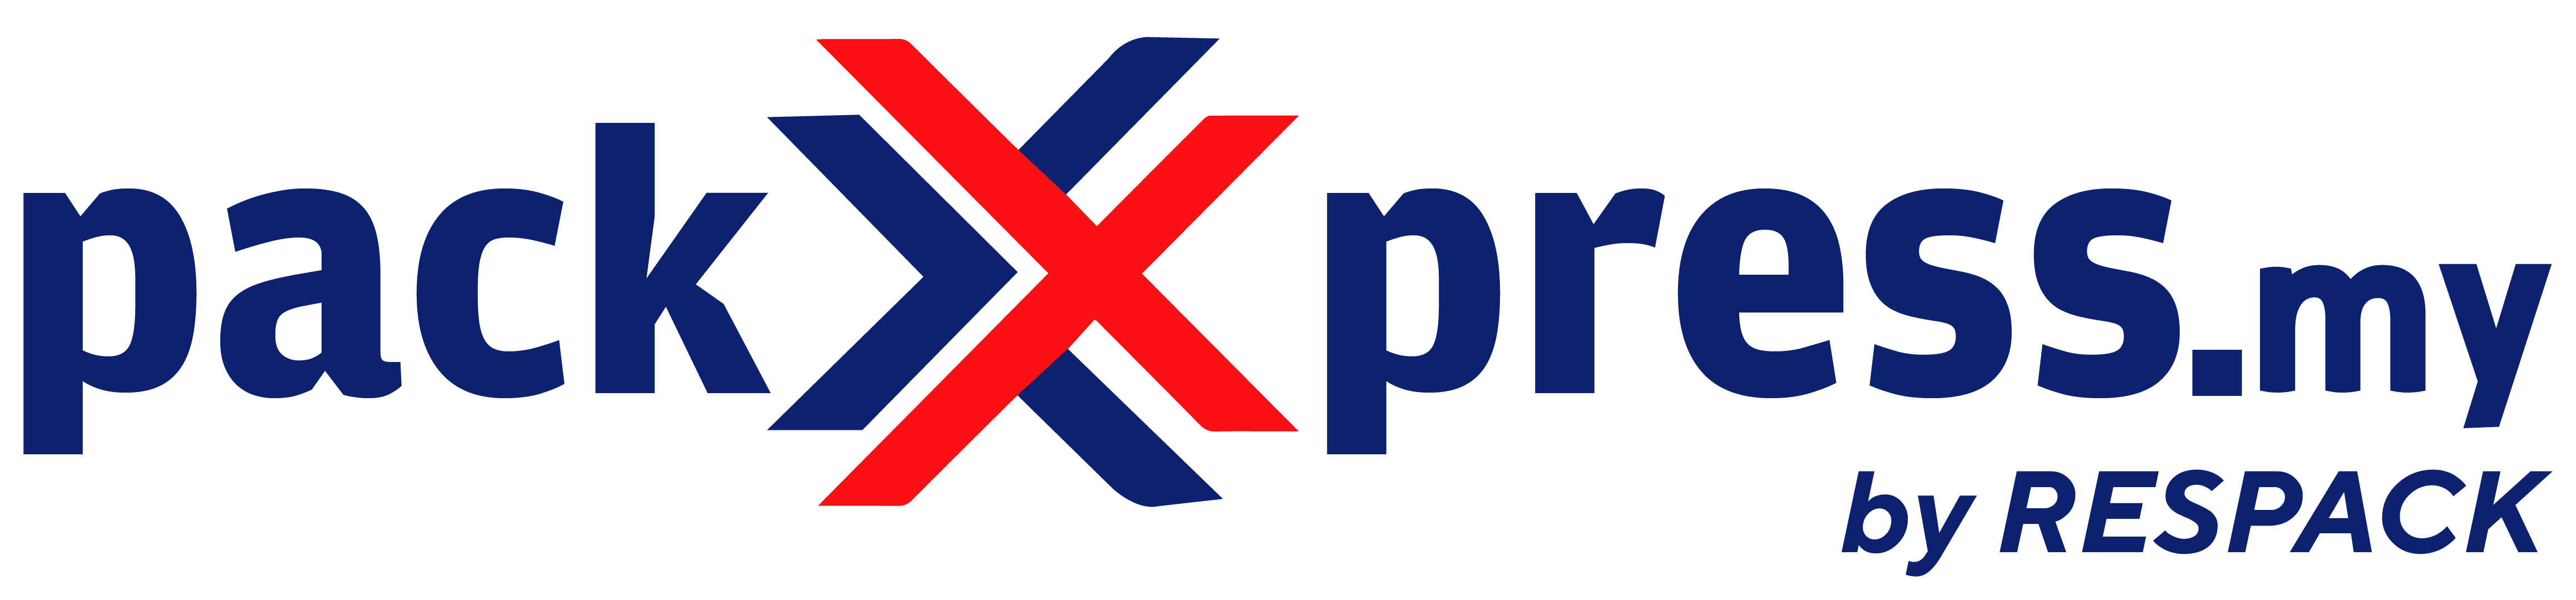 PackXpress.my by RESPACK